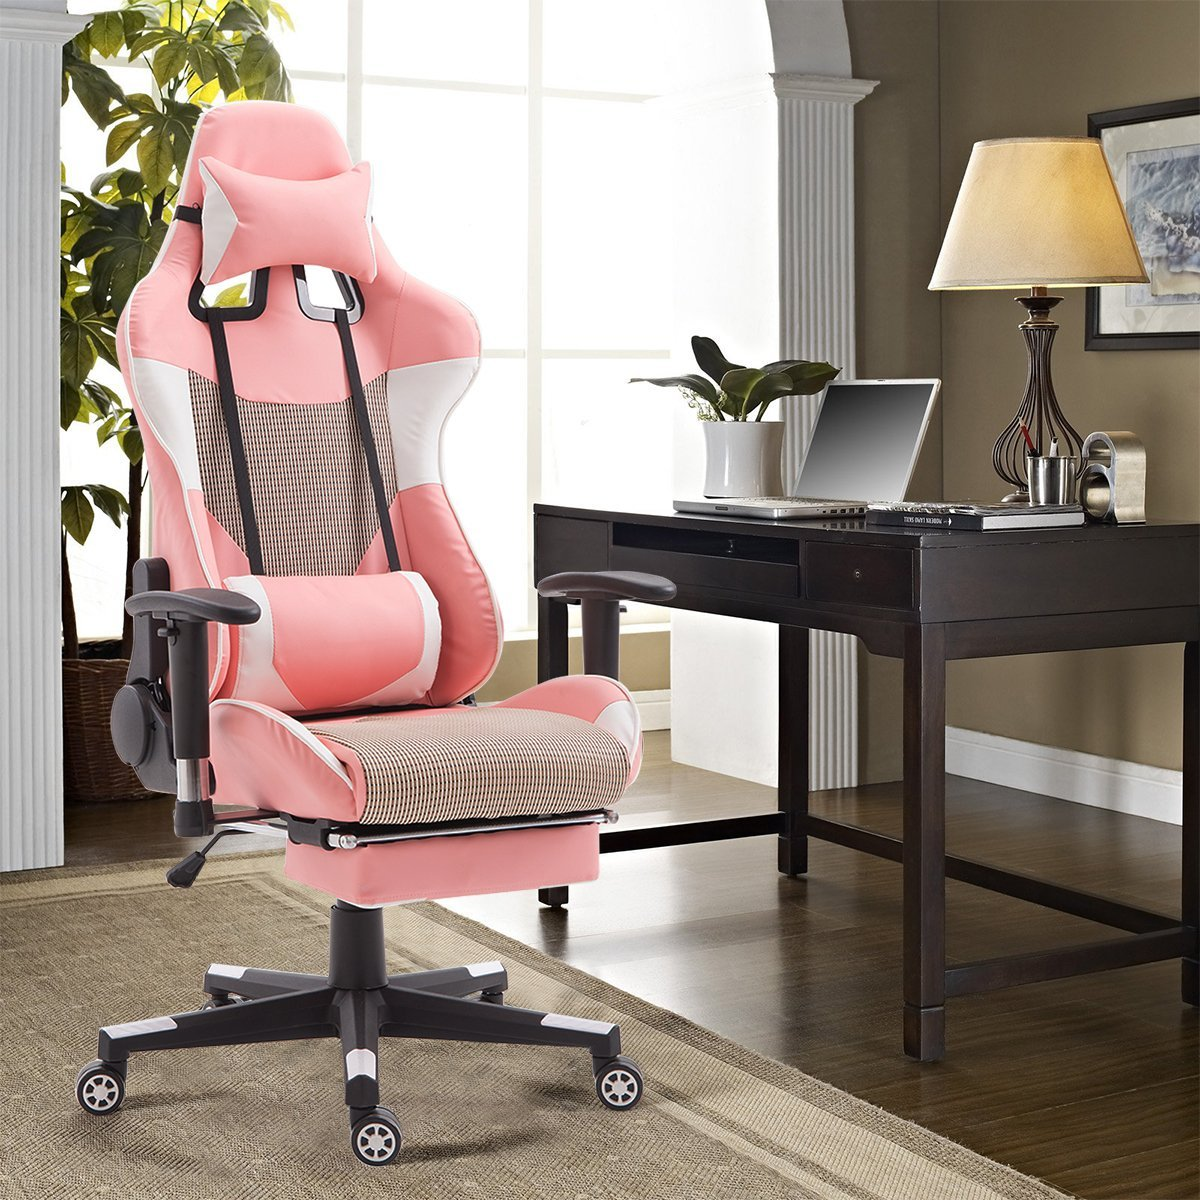 best gaming chair with footrest white plastic folding chairs wedding giantex high back racing style reclining